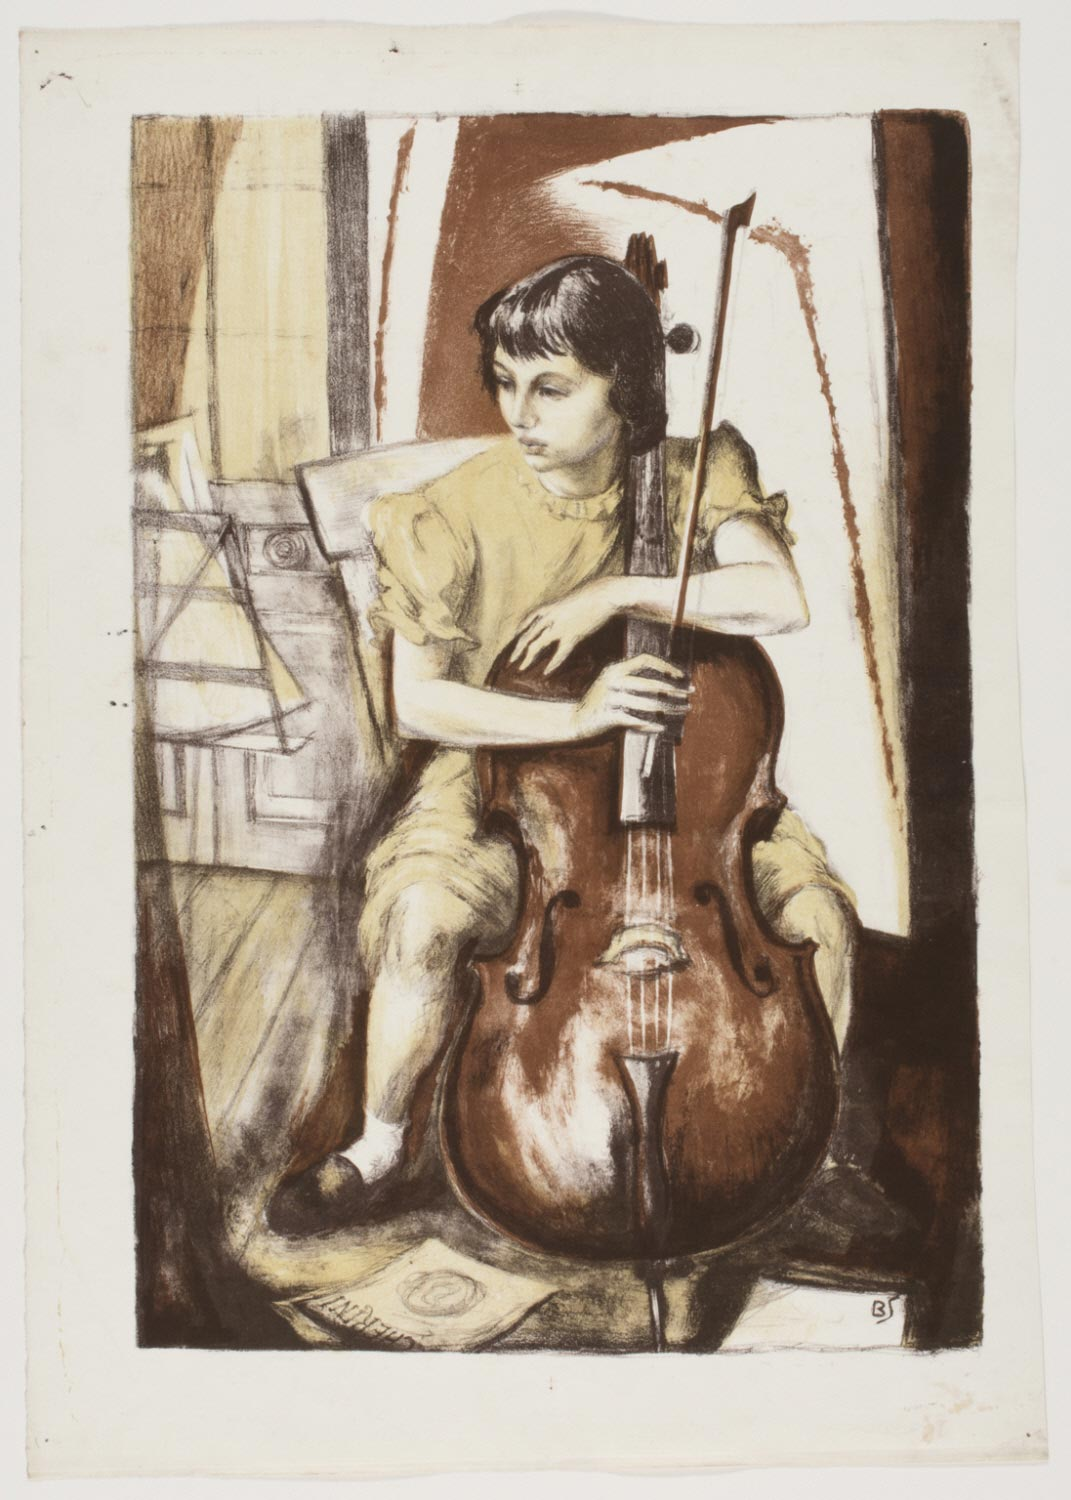 Sonia and Her Cello